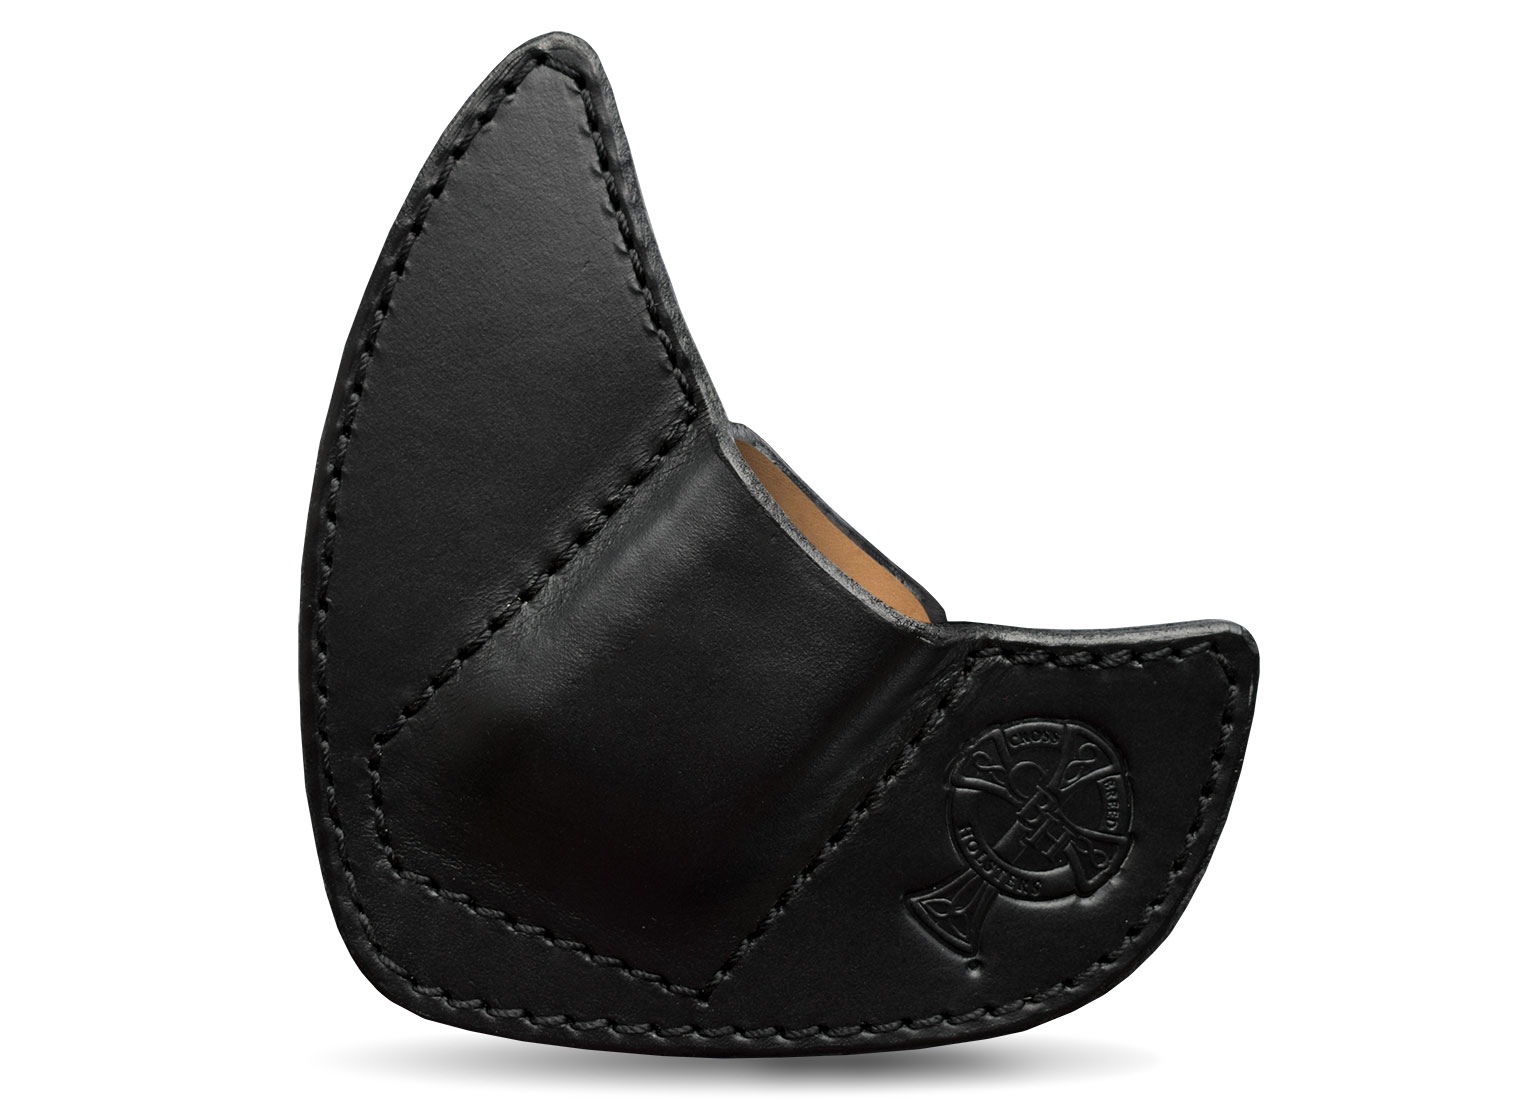 HTTP WWW.CROSSBREEDHOLSTERS.COM GIVEAWAYS ULTIMATE-GIVEAWAY